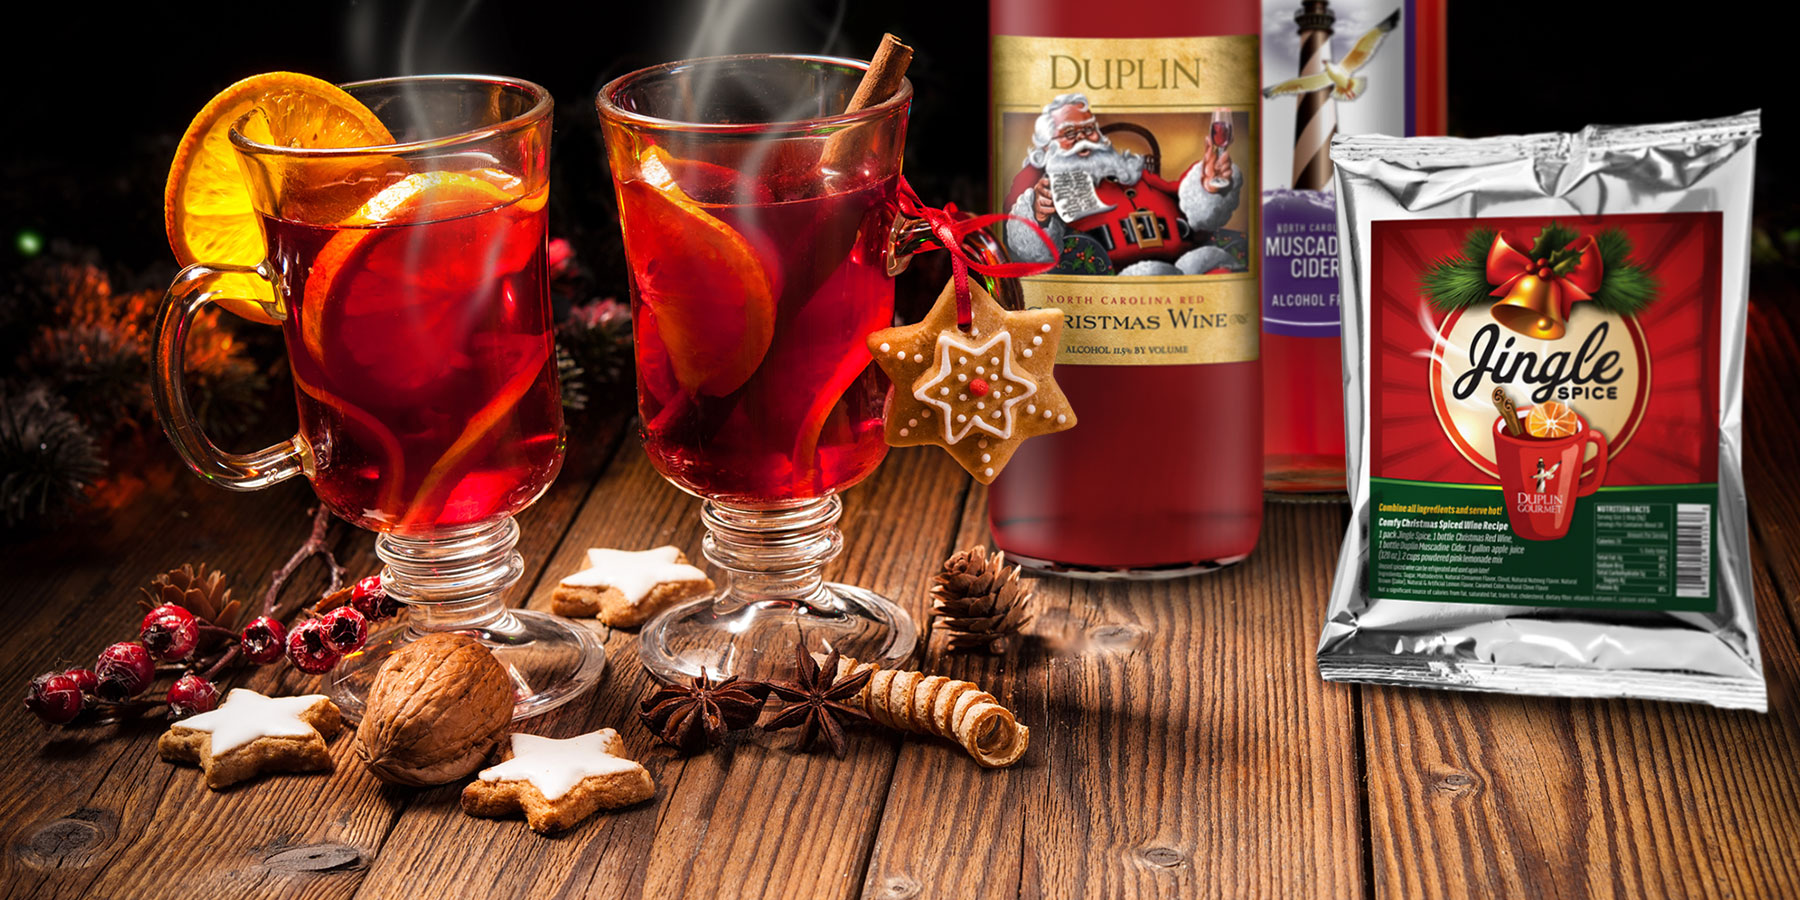 Hot mulled wine spiced just right is the must-have holiday drink recipe.